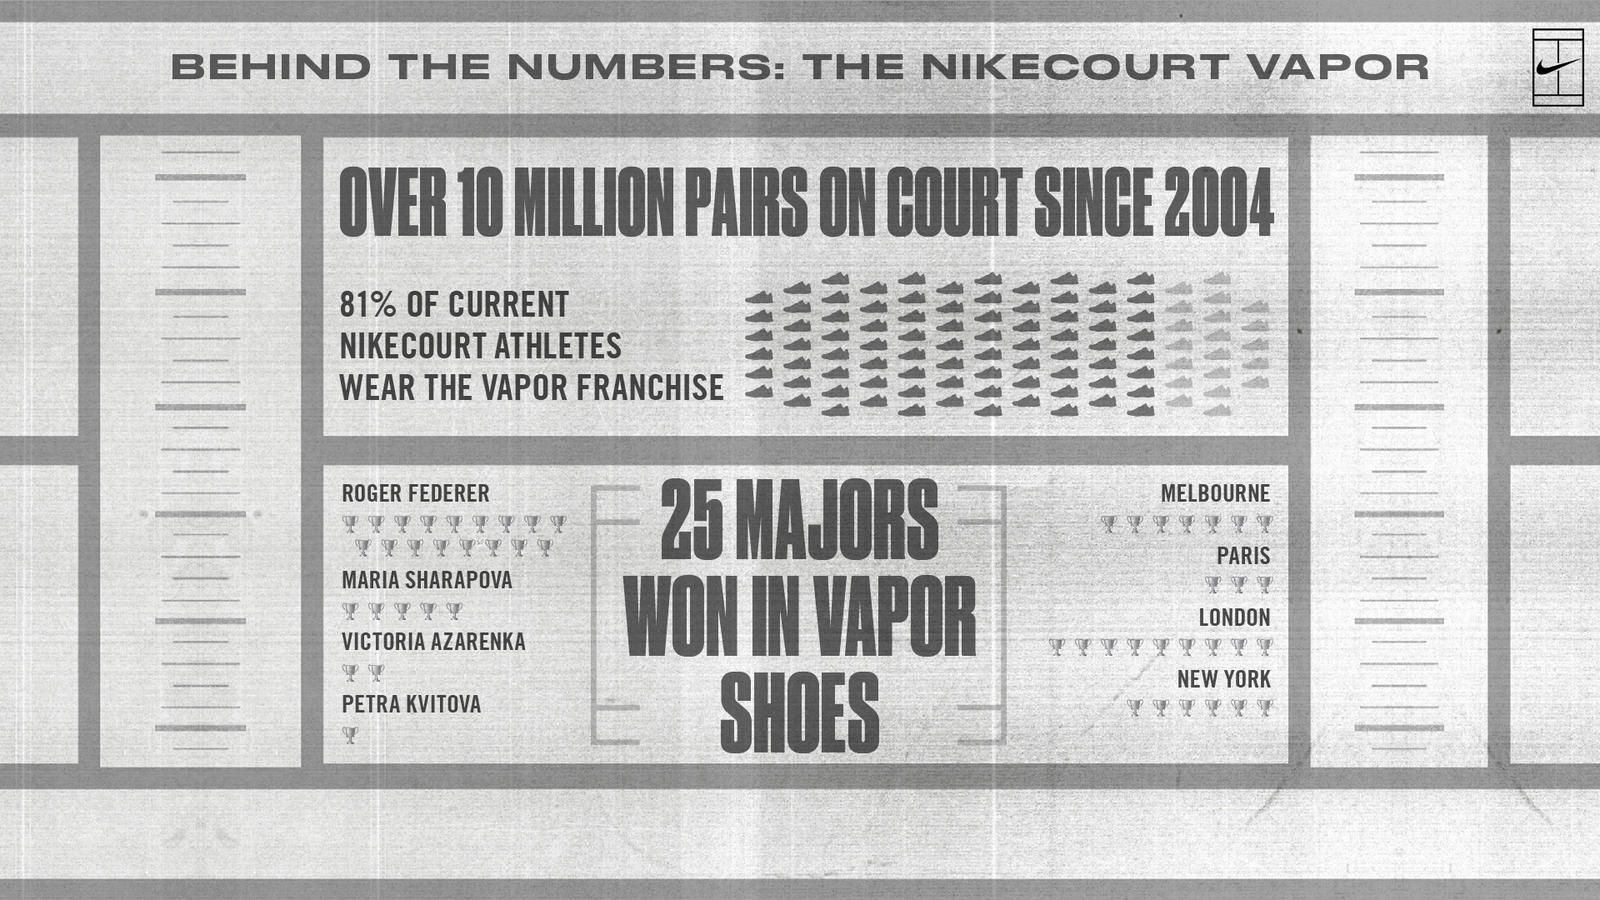 Introducing the NikeCourt Vapor X 6